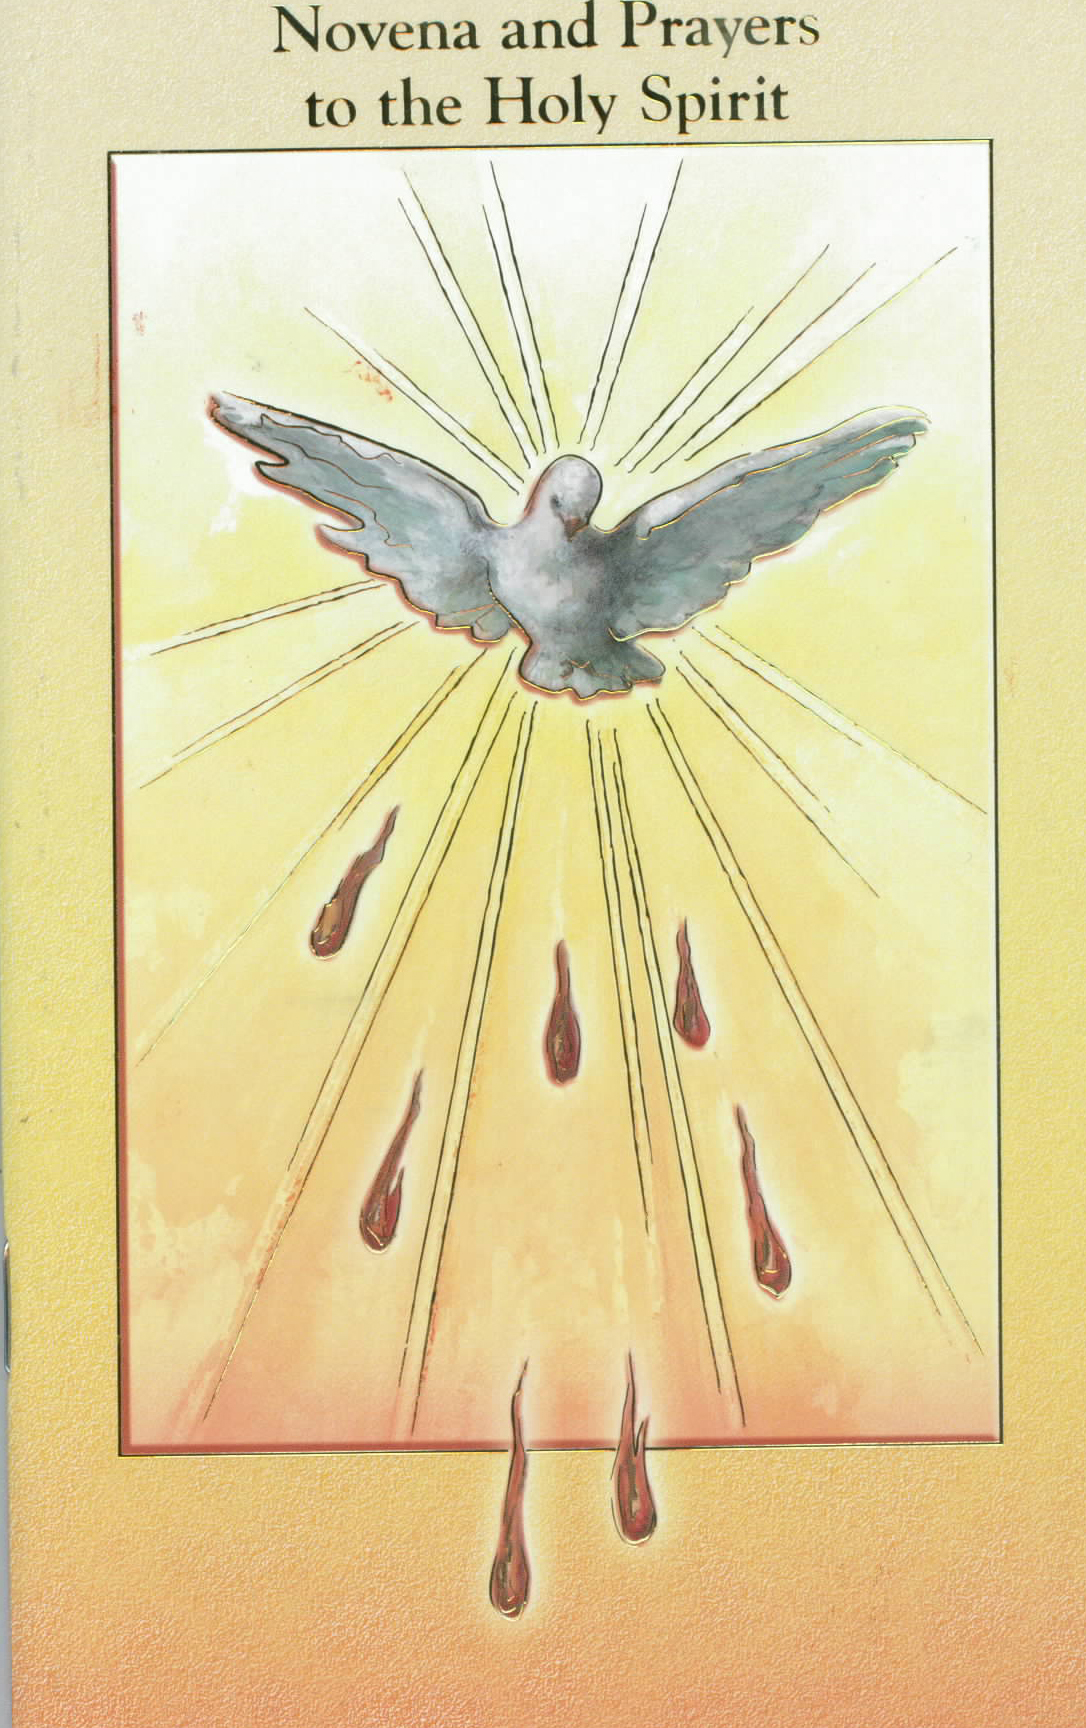 Novena and Prayers to the Holy Spirit Prayer Book 12-2432-651